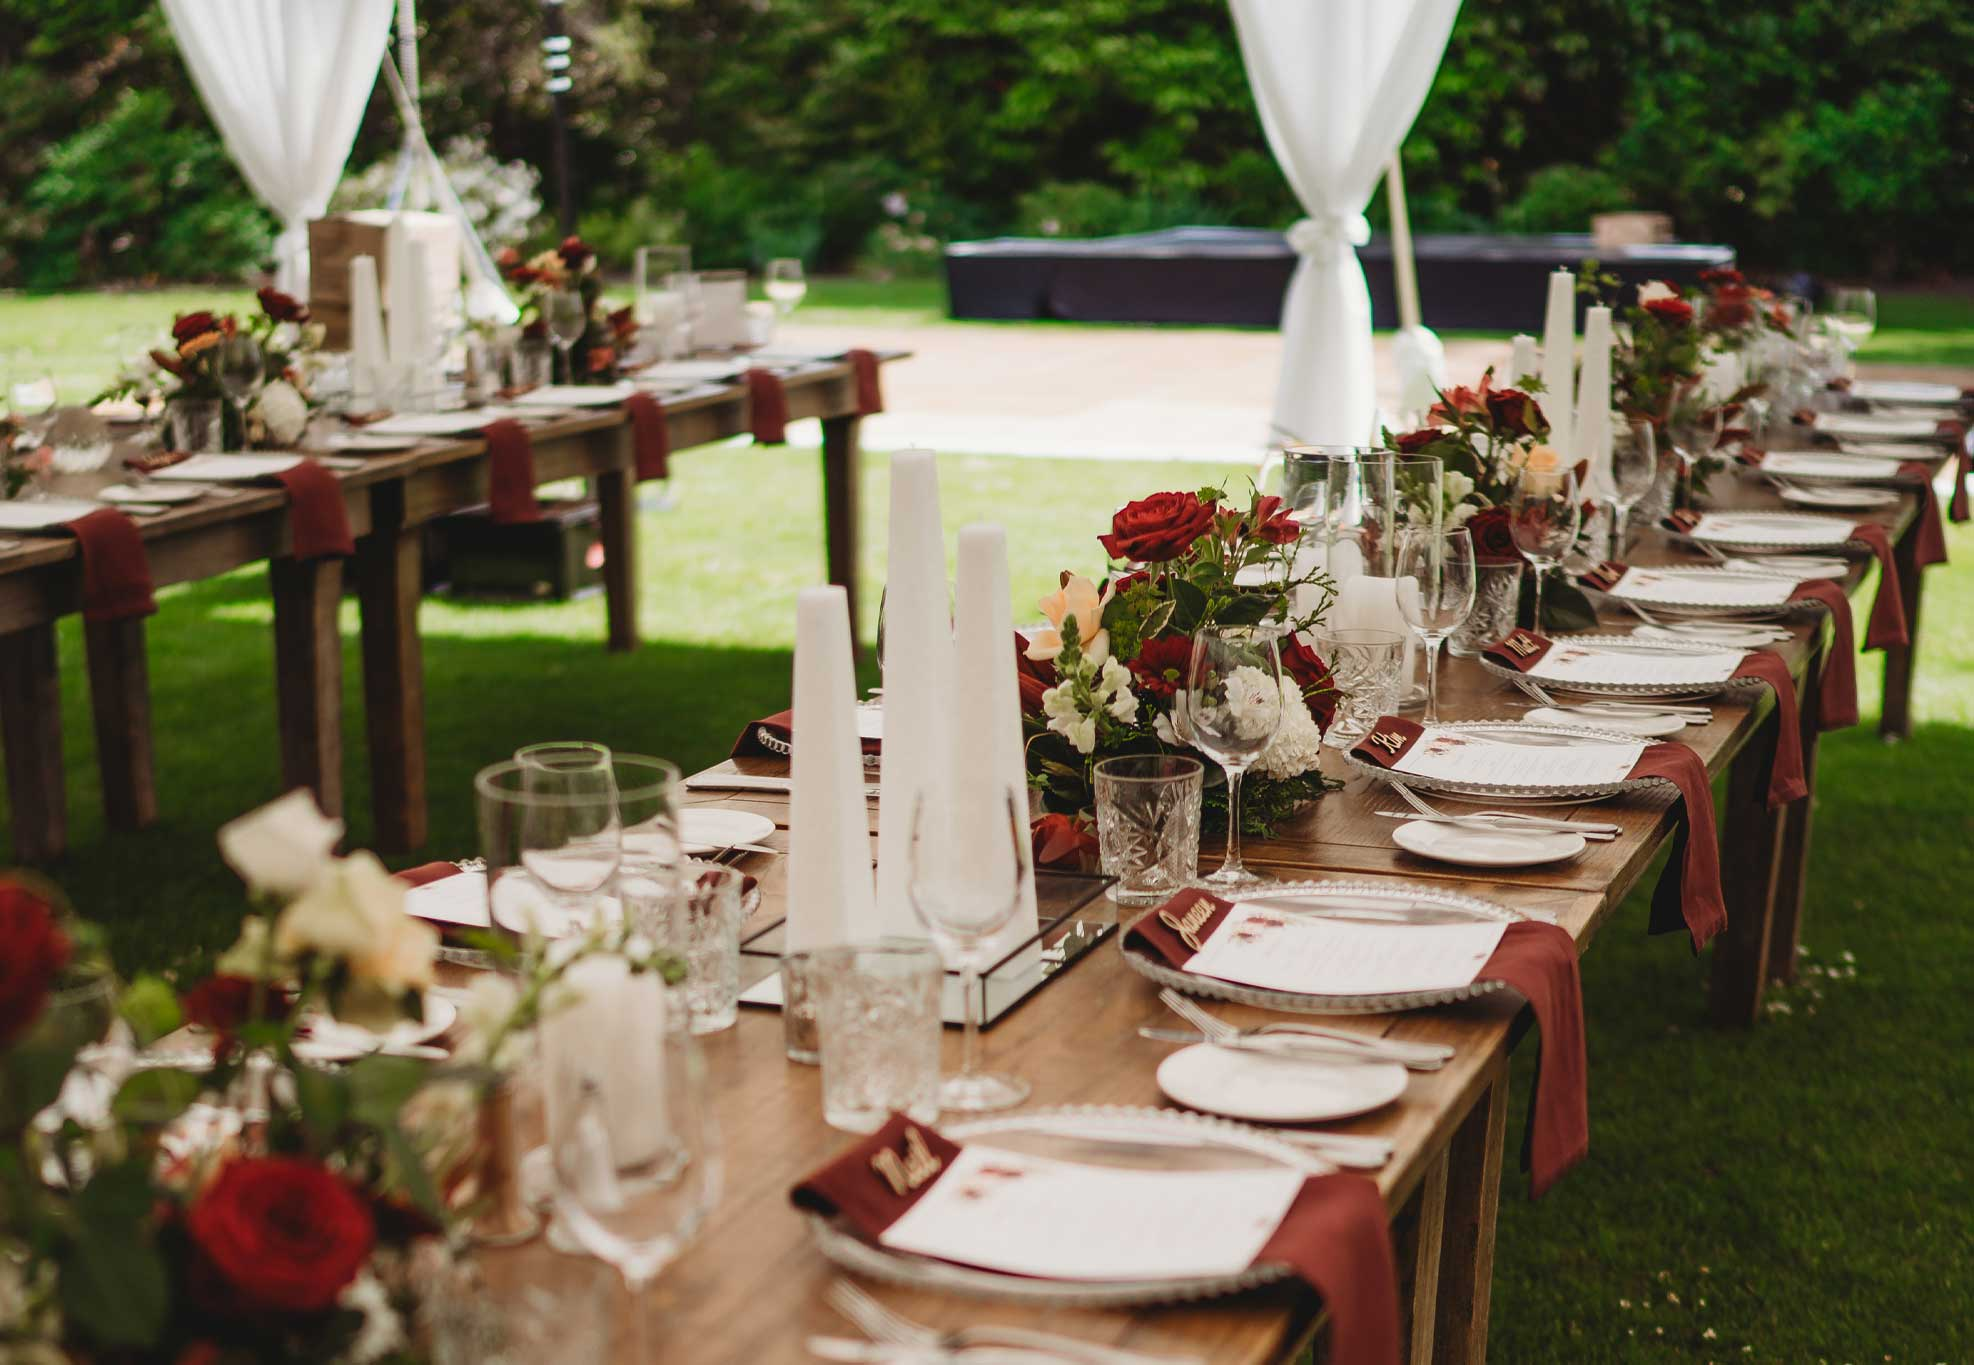 silk-estate-marquee-weddings-and-events-styling-and-hire-crockery-side-plate